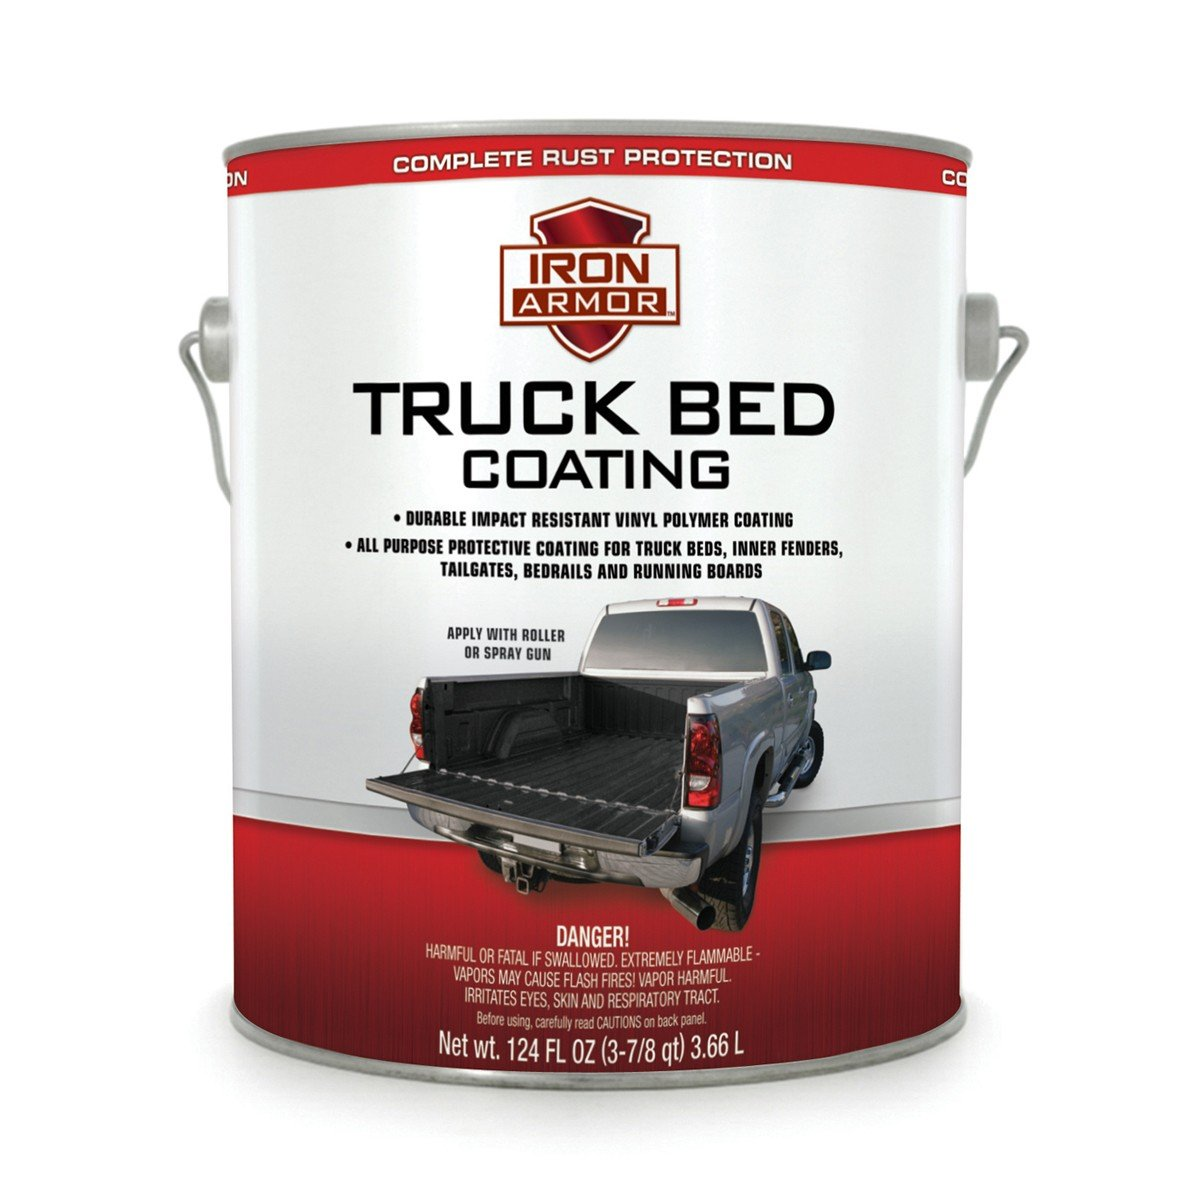 Amazon.com: Iron Armor Truck Bed Coating in 1 Gallon. Spray on or ...